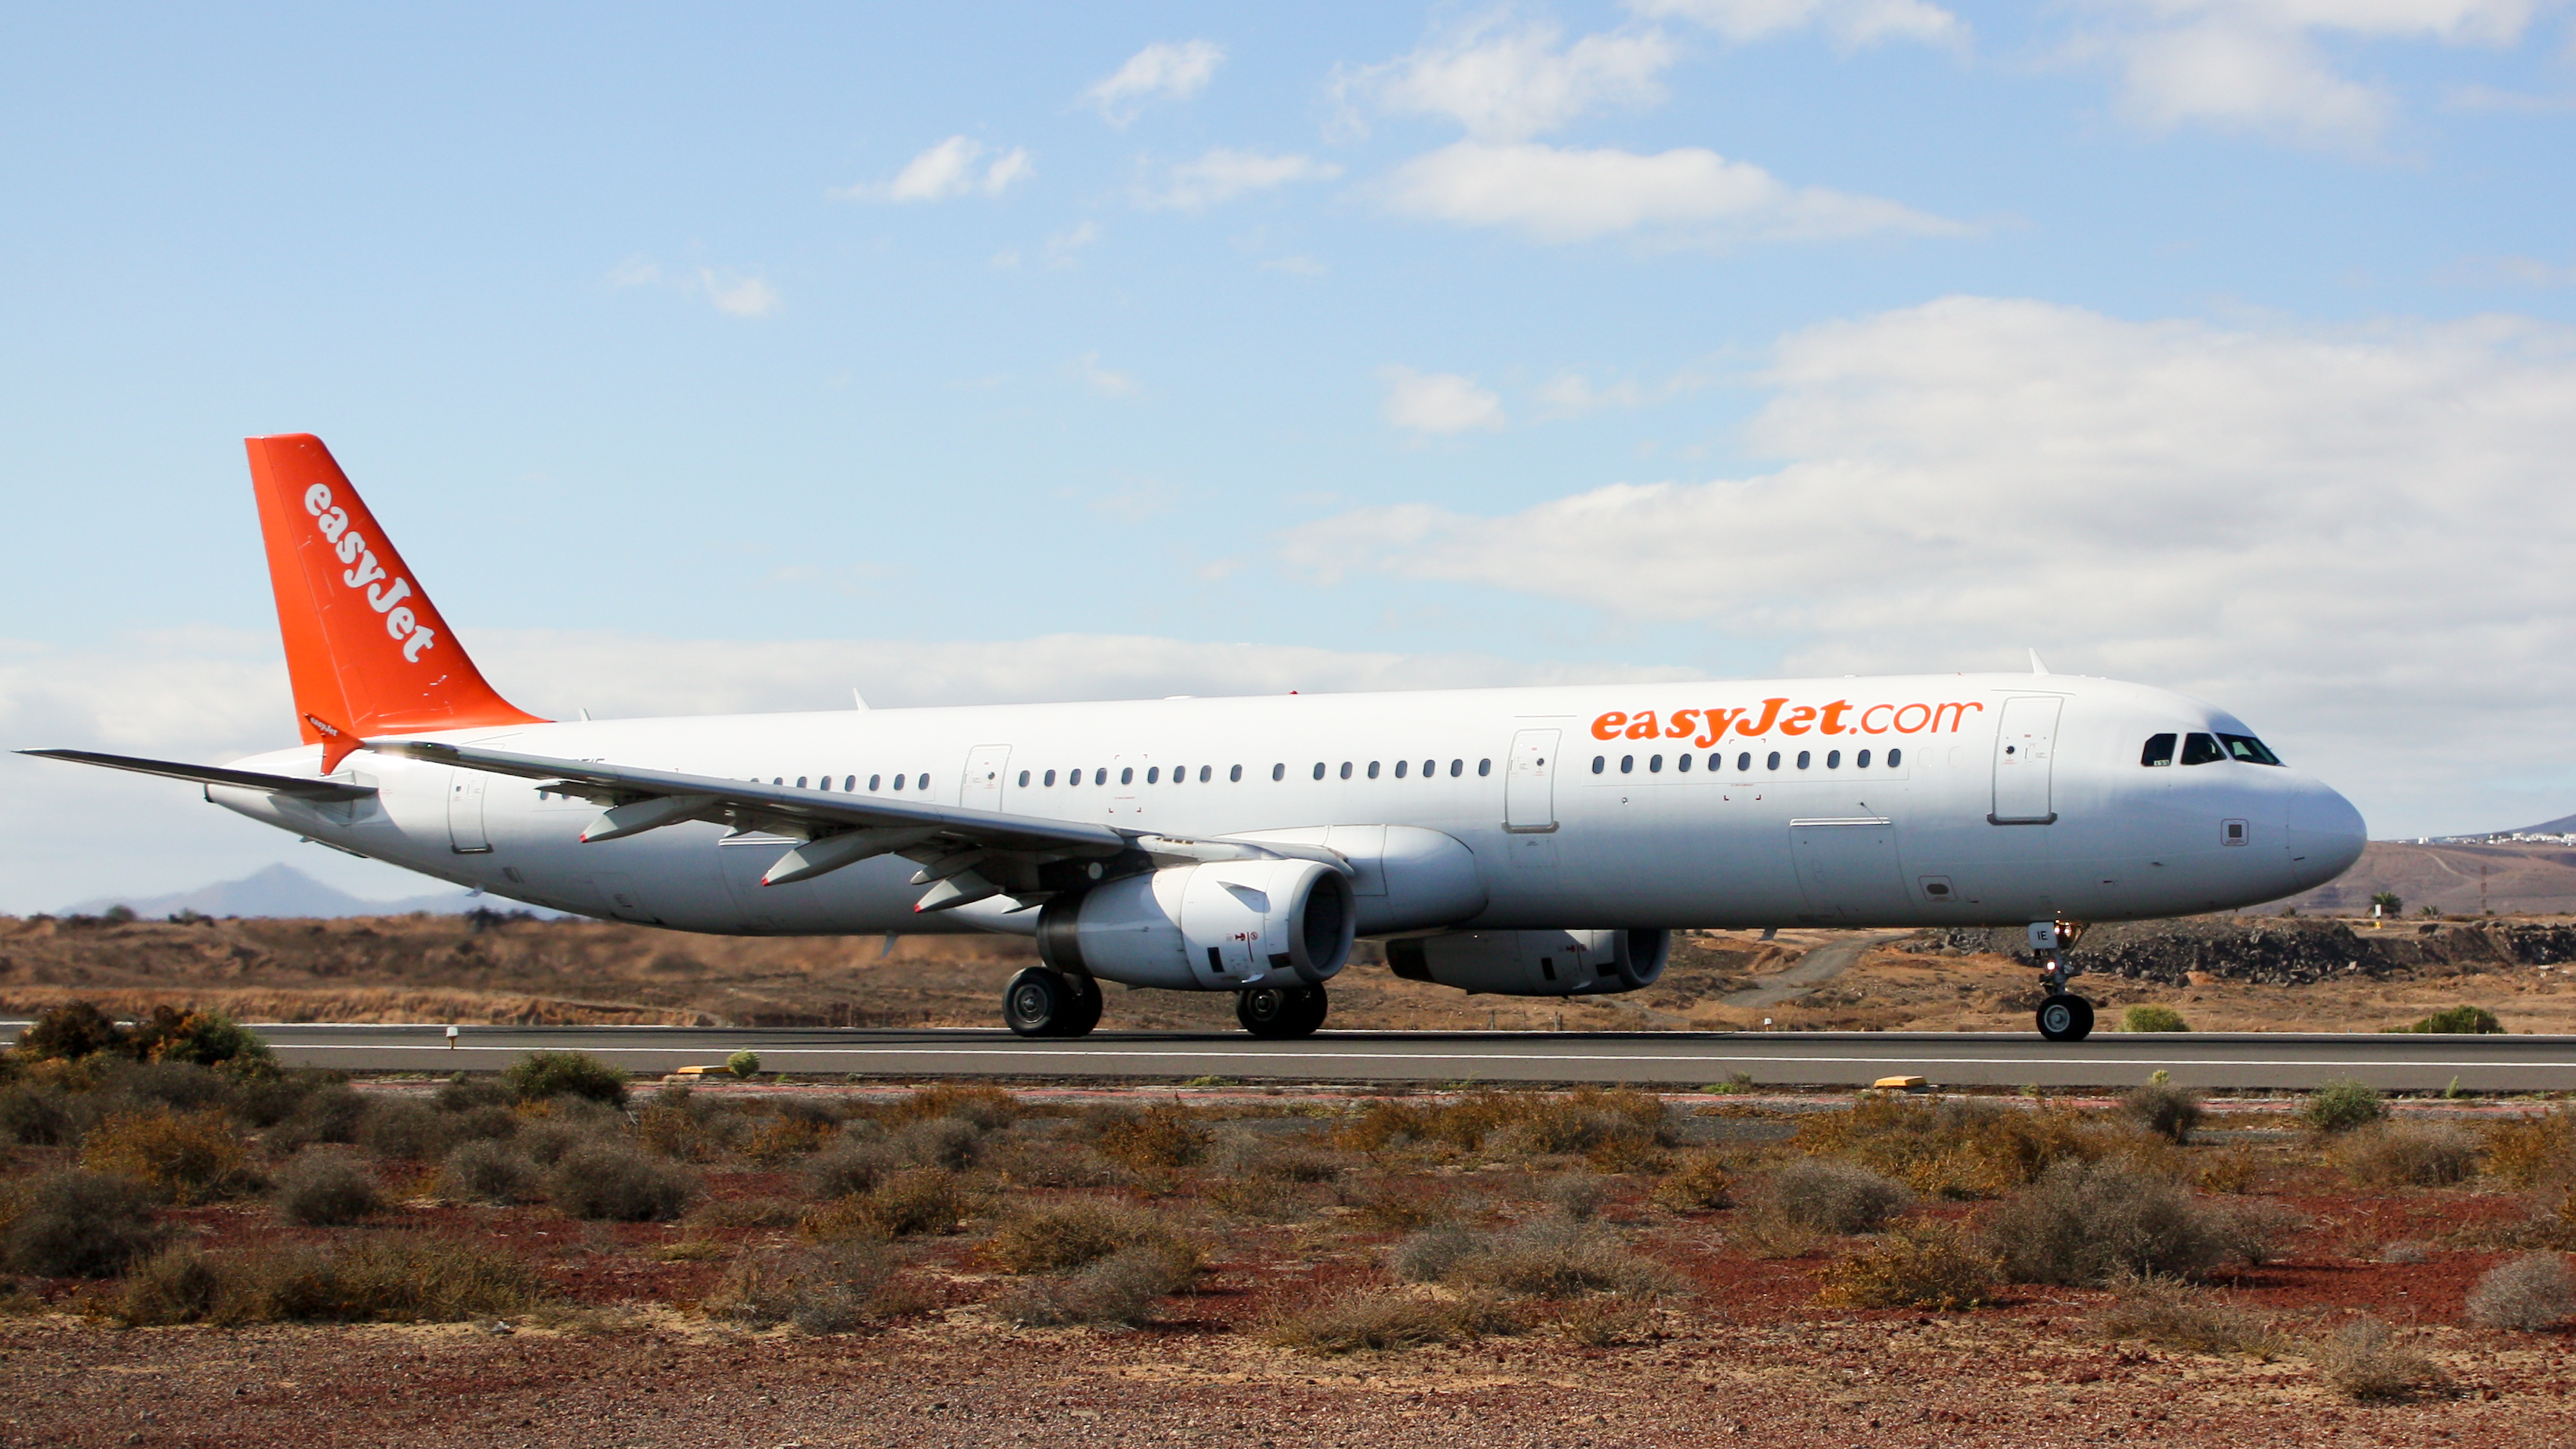 essay jet Has a variety of extra activities that are associated with the airline these companies also have the easy in their name, including the easycar rental.